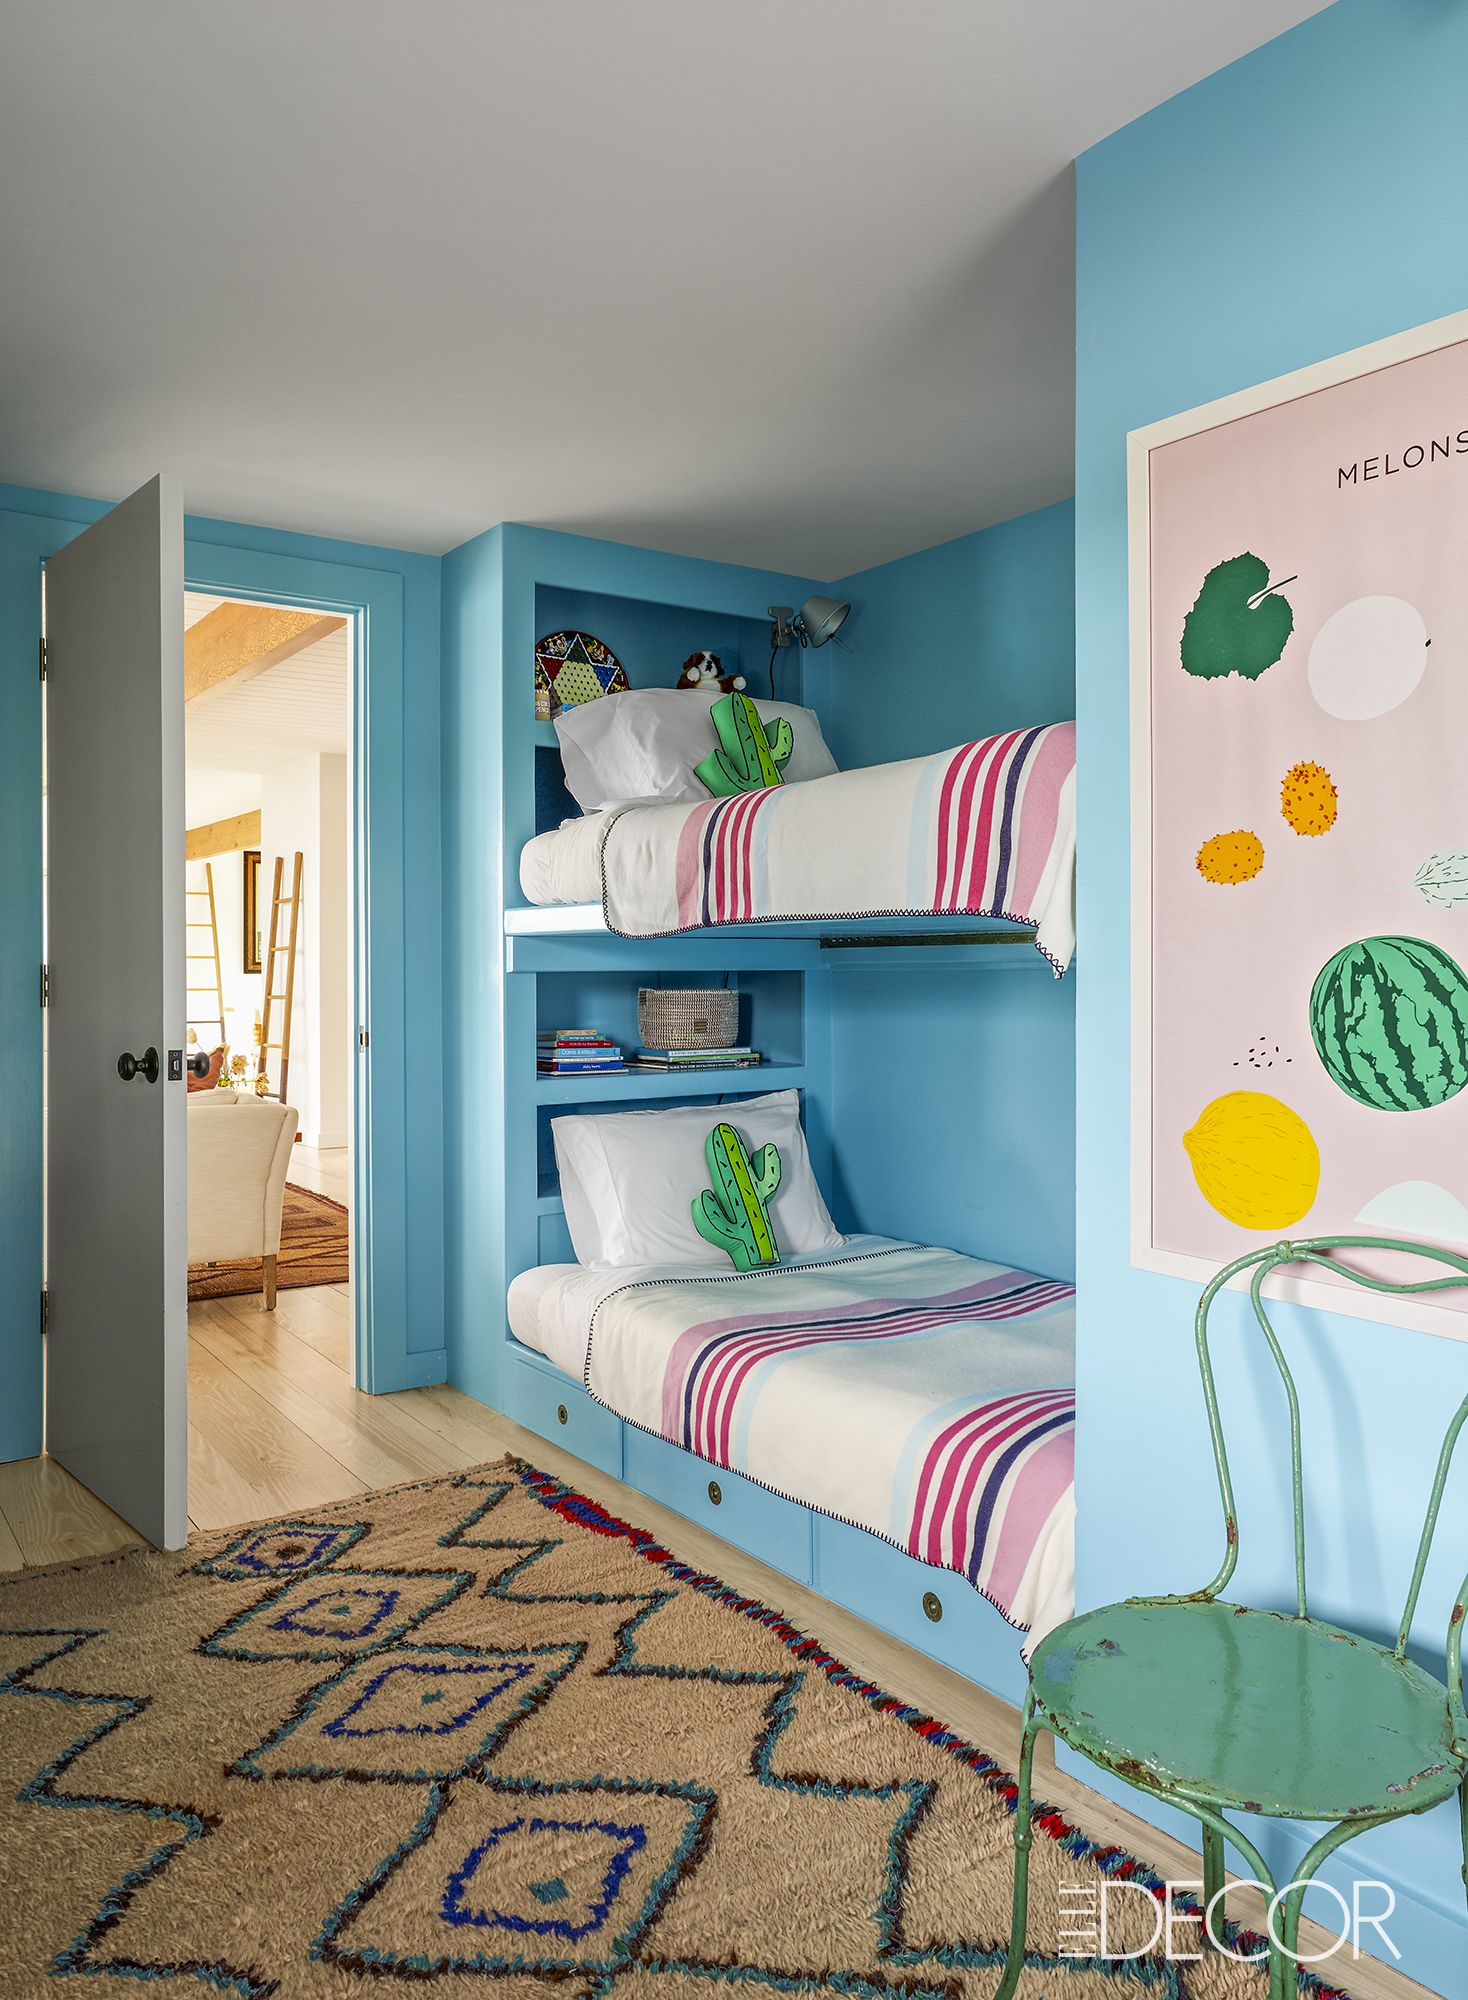 25 Cool Kids 39 Room Ideas How To Decorate A Child 39 S Bedroom